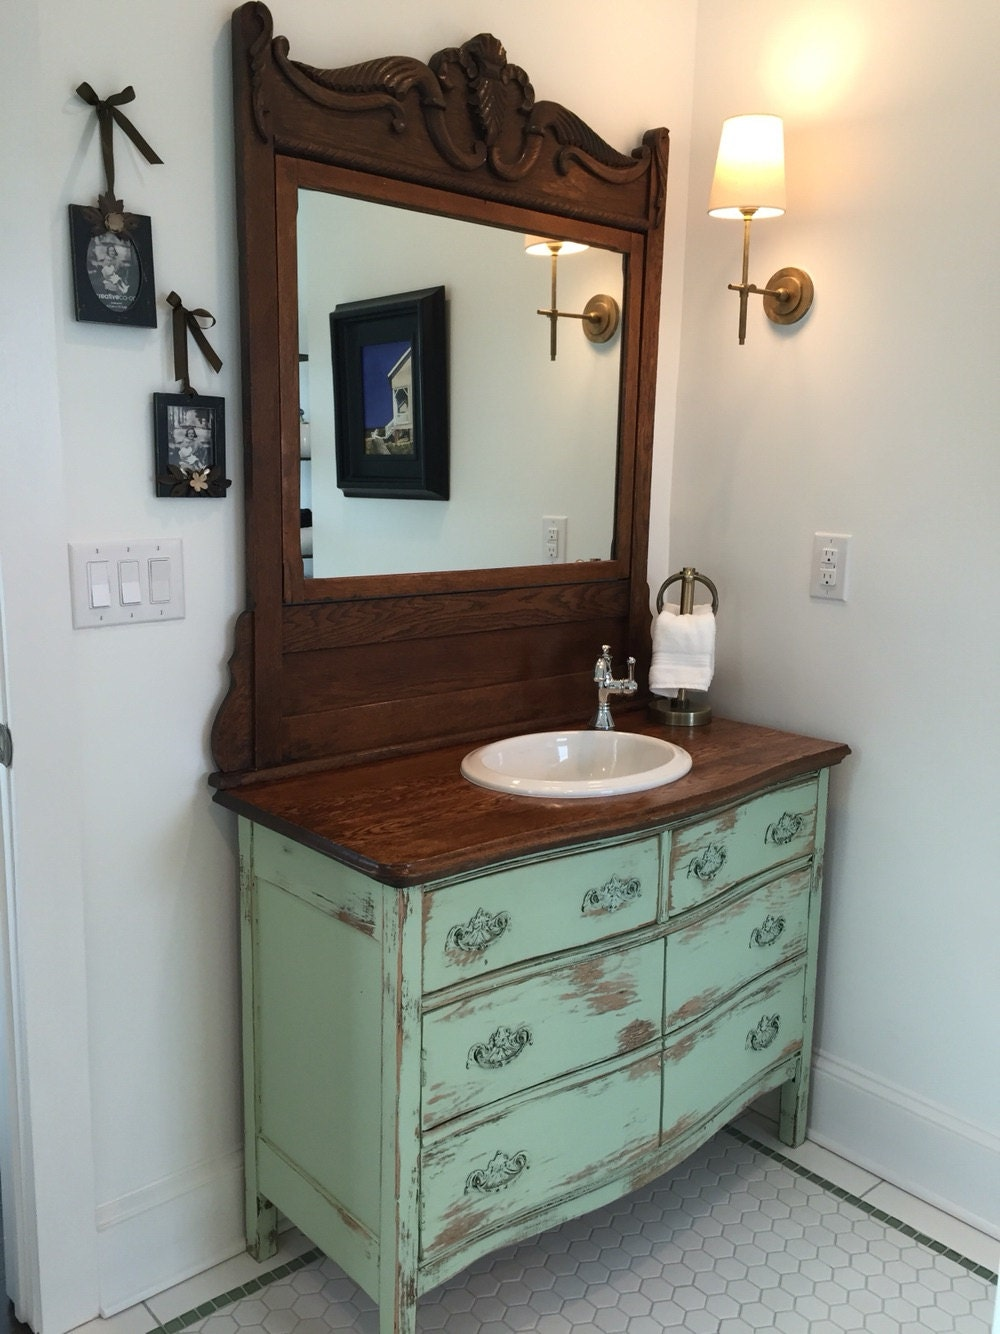 BATHROOM VANITY From Antique Dresser! We Find, Restore, Convert, Paint and  Distress - One Of A Kind! Country Furniture - BATHROOM VANITY From Antique Dresser! We Find, Restore, Convert